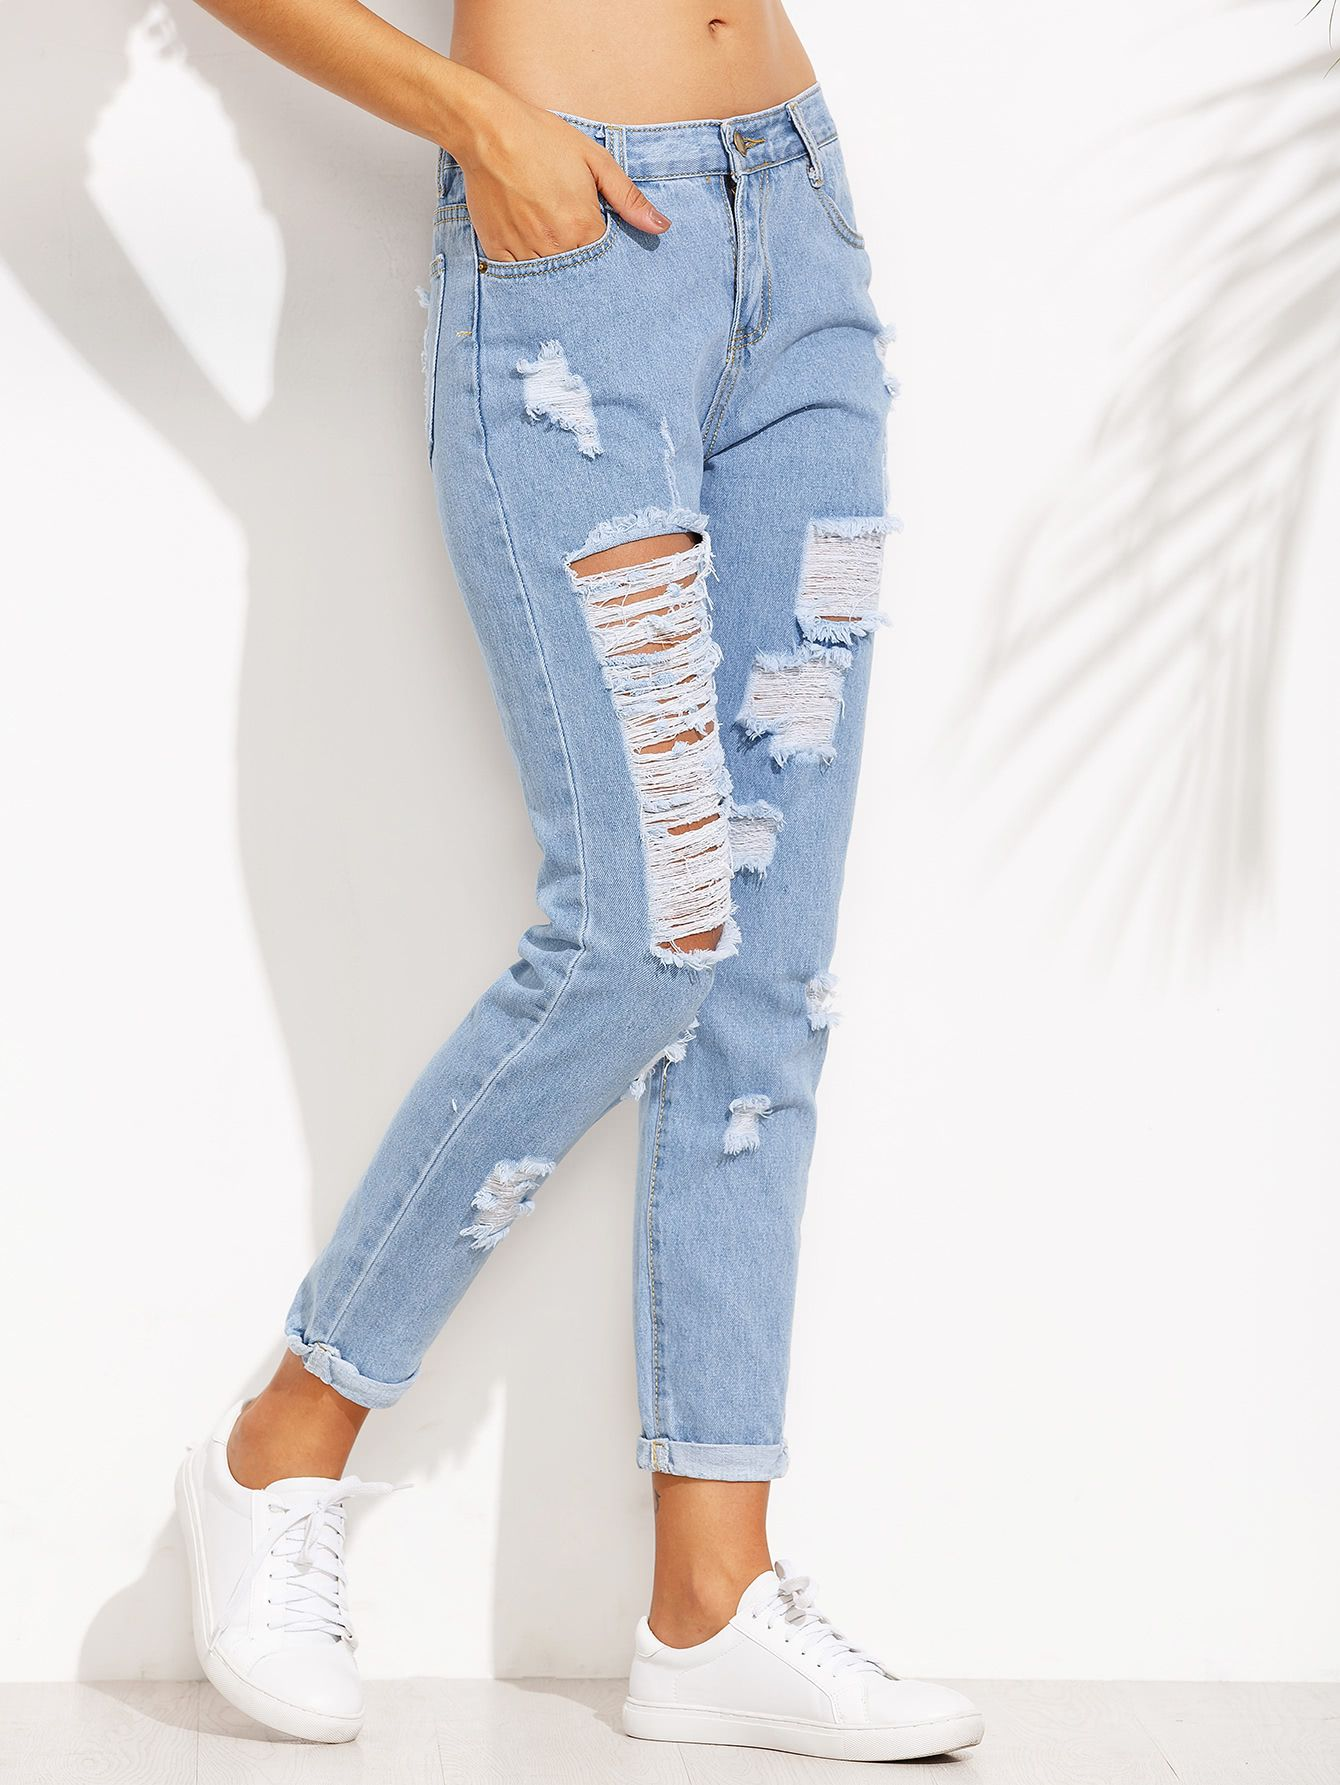 d383b40a07 Shop Extreme Distressed Roll Hem Jeans online. SheIn offers Extreme  Distressed Roll Hem Jeans & more to fit your fashionable needs.